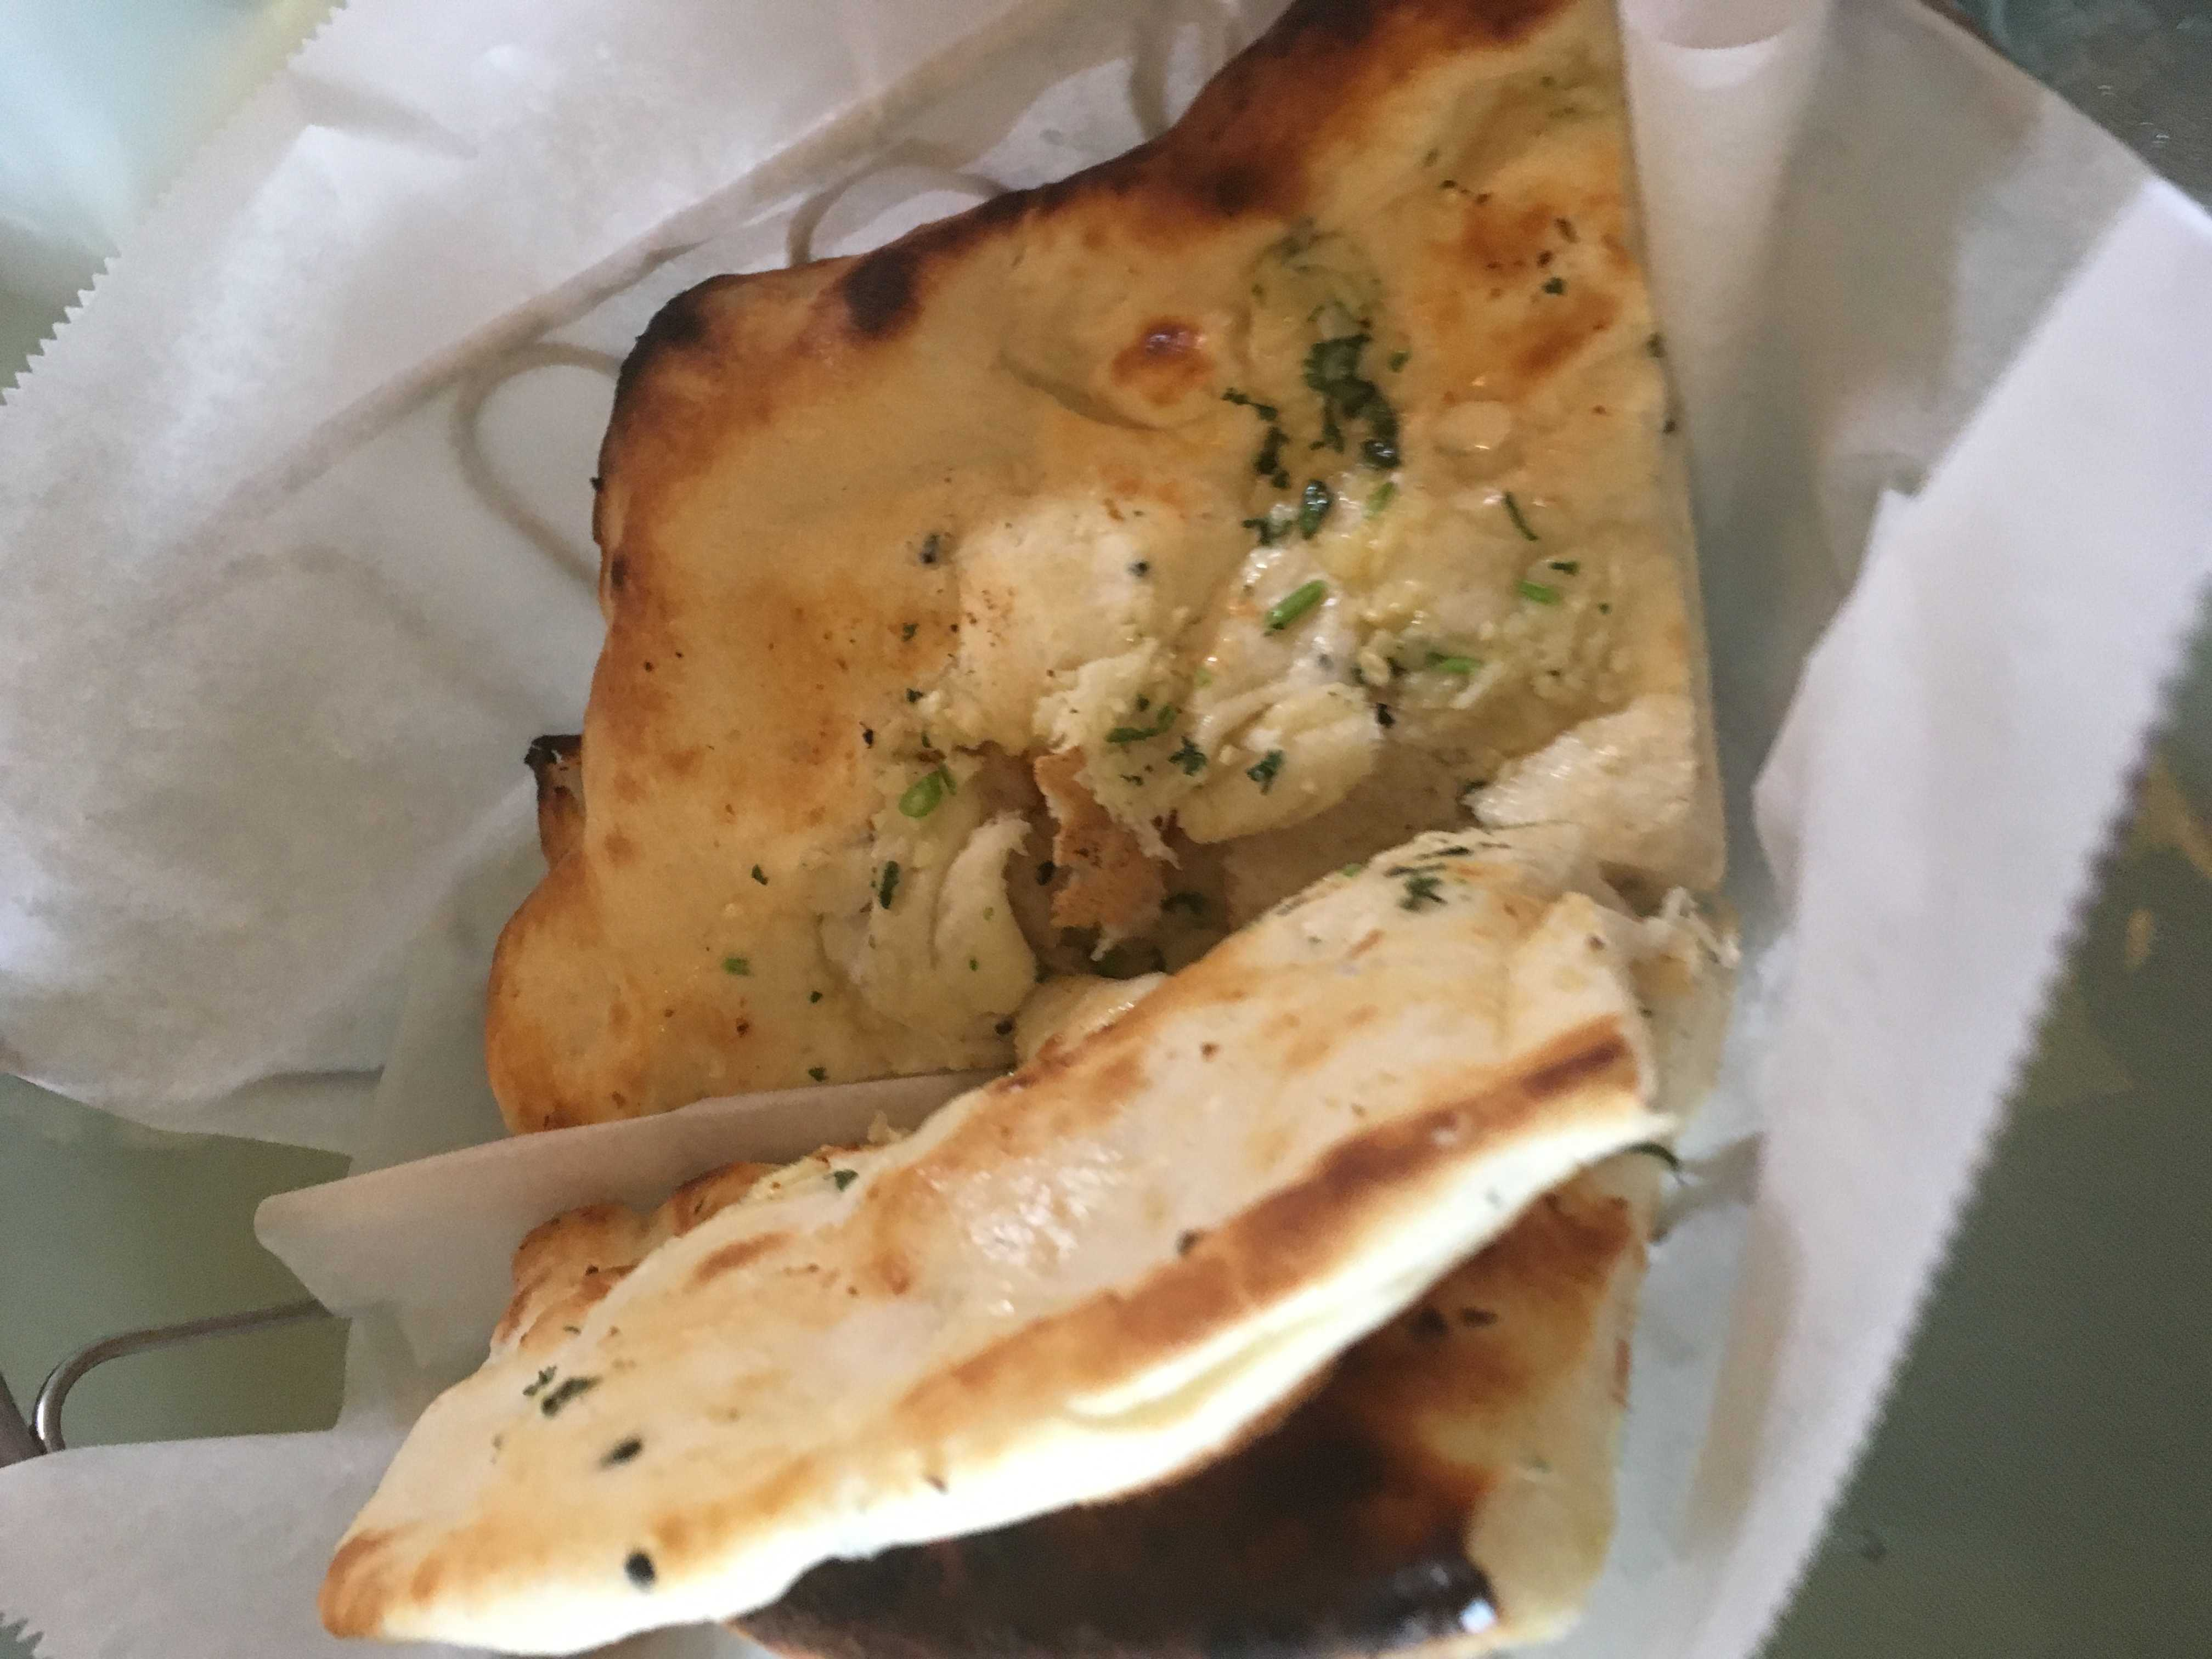 A savory and delicious basket of garlic naan bread from The Taj Cafe. Credit: Elie Bufford / The Foothill Dragon Press